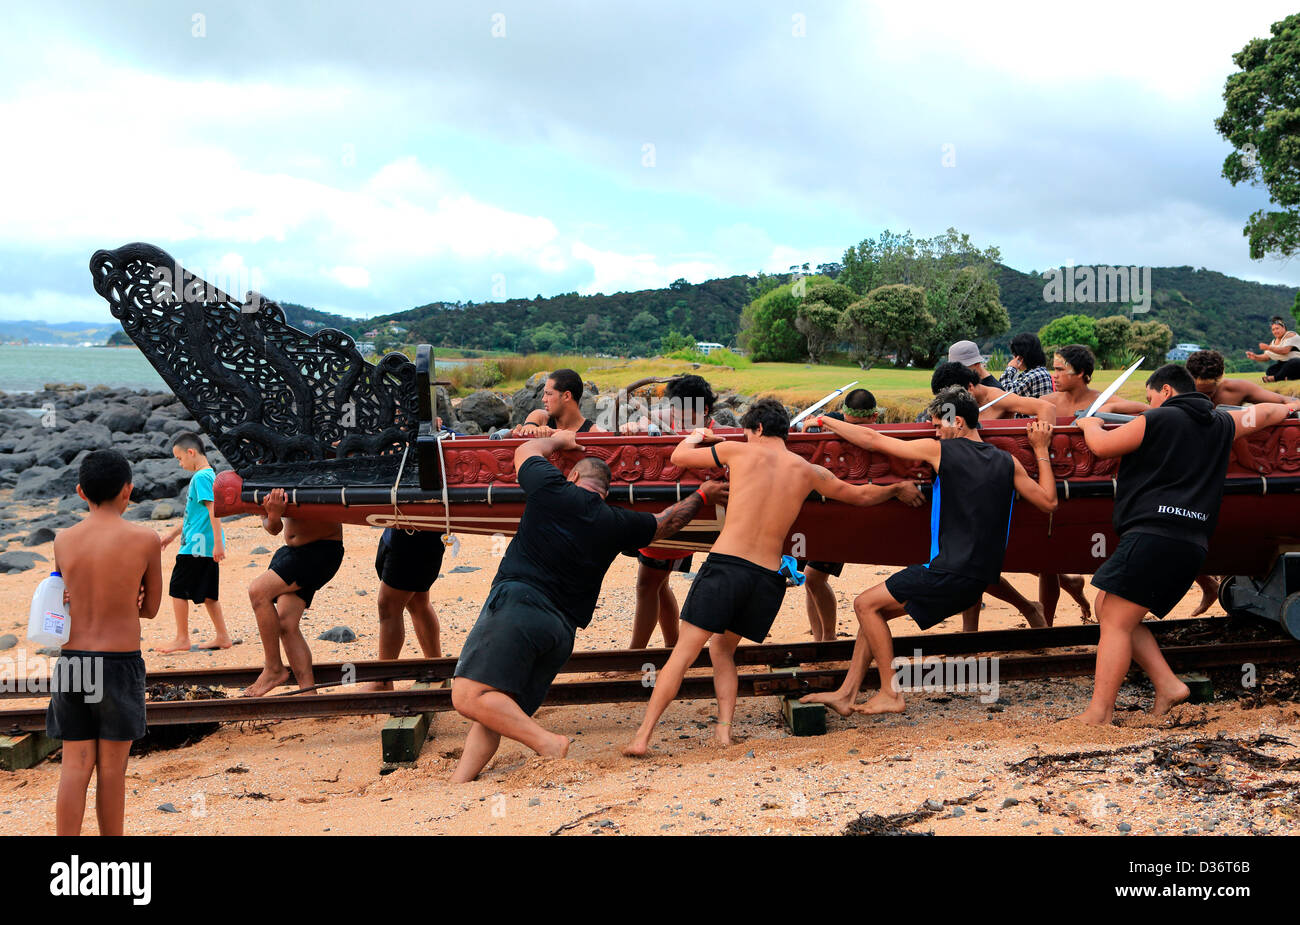 Maori waka crew with the great waka Ngatokimatawhaorua at the Waitangi Treaty Grounds during Waitangi Day celebrations. Stock Photo